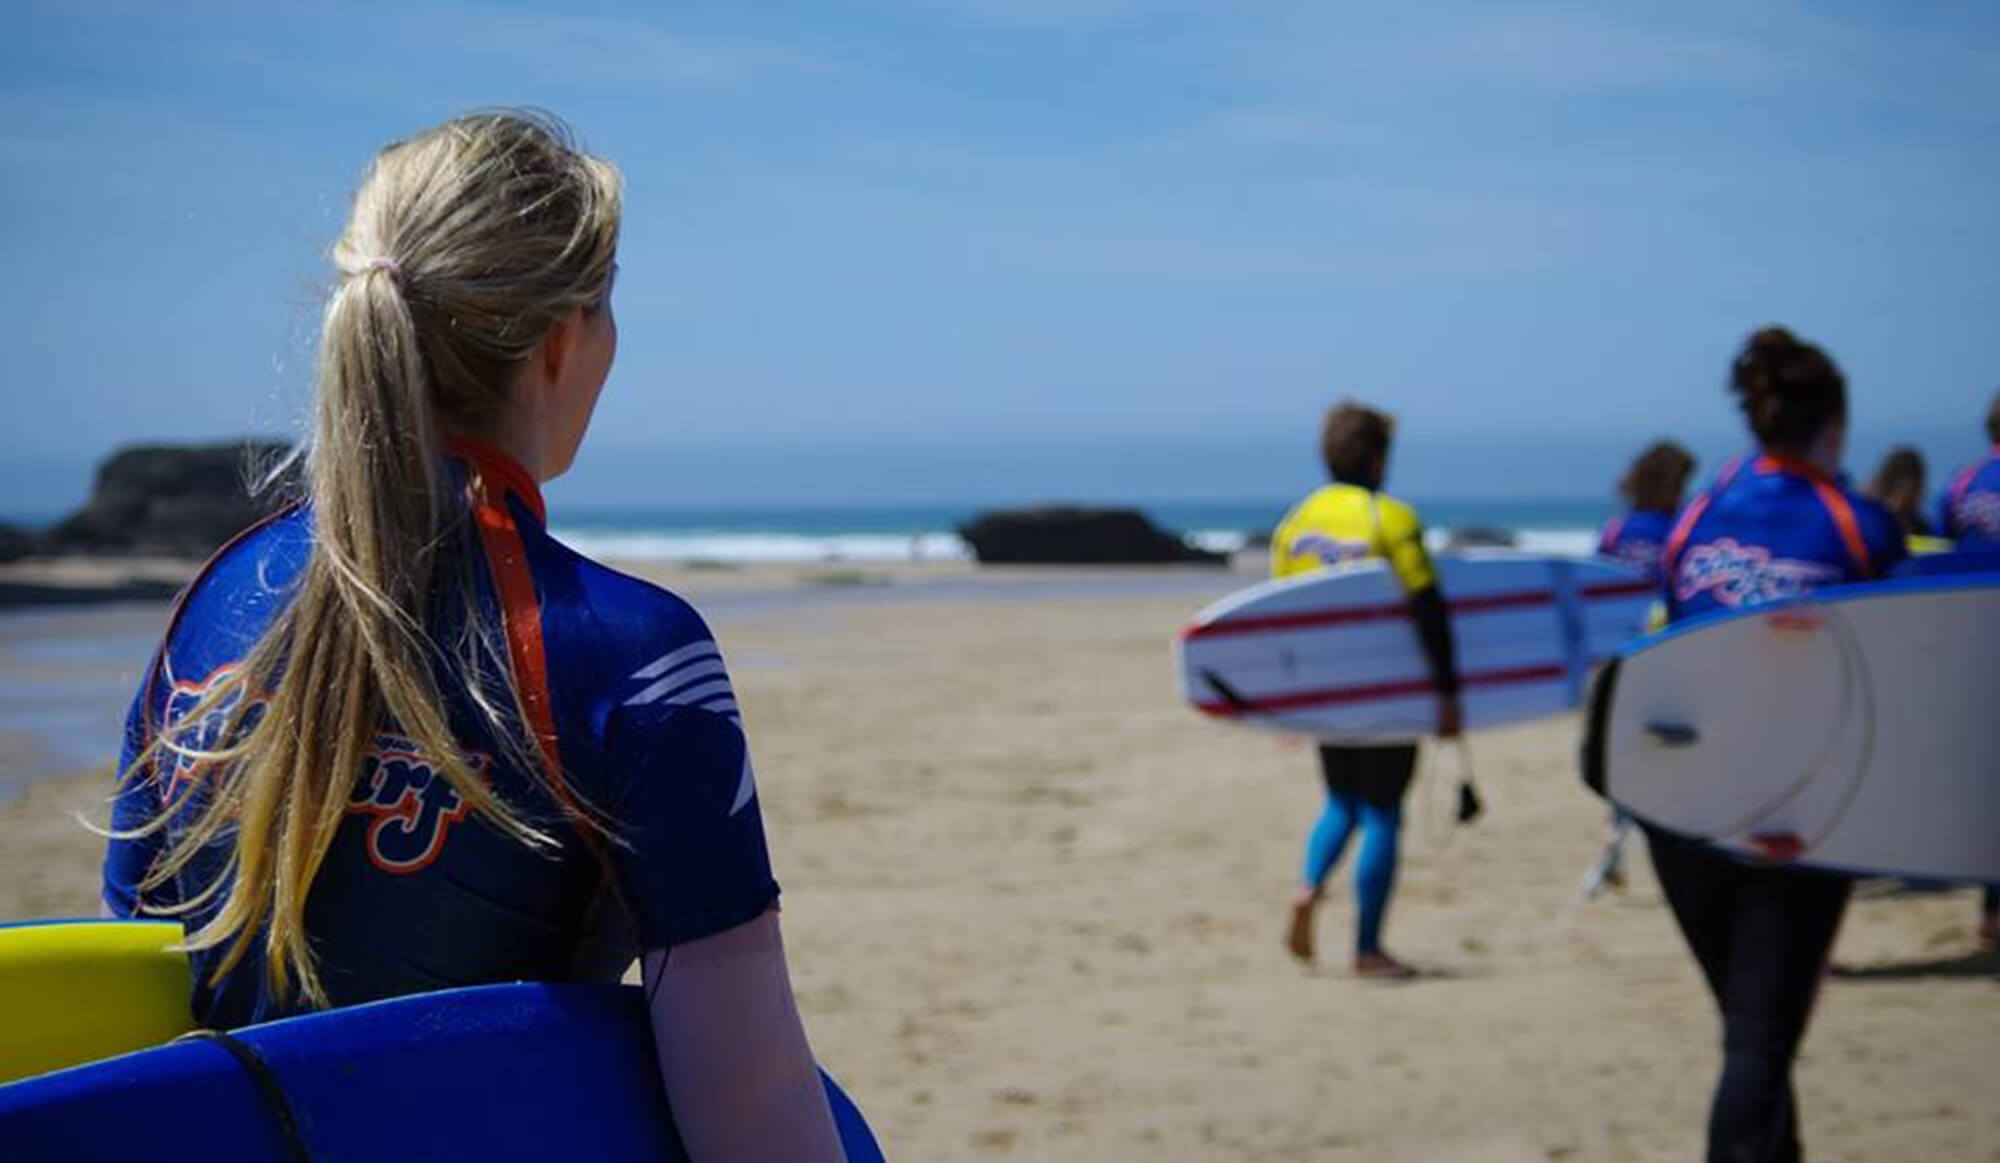 kingsurf surf school - Kingsurf Surf School, Newquay, Cornwall